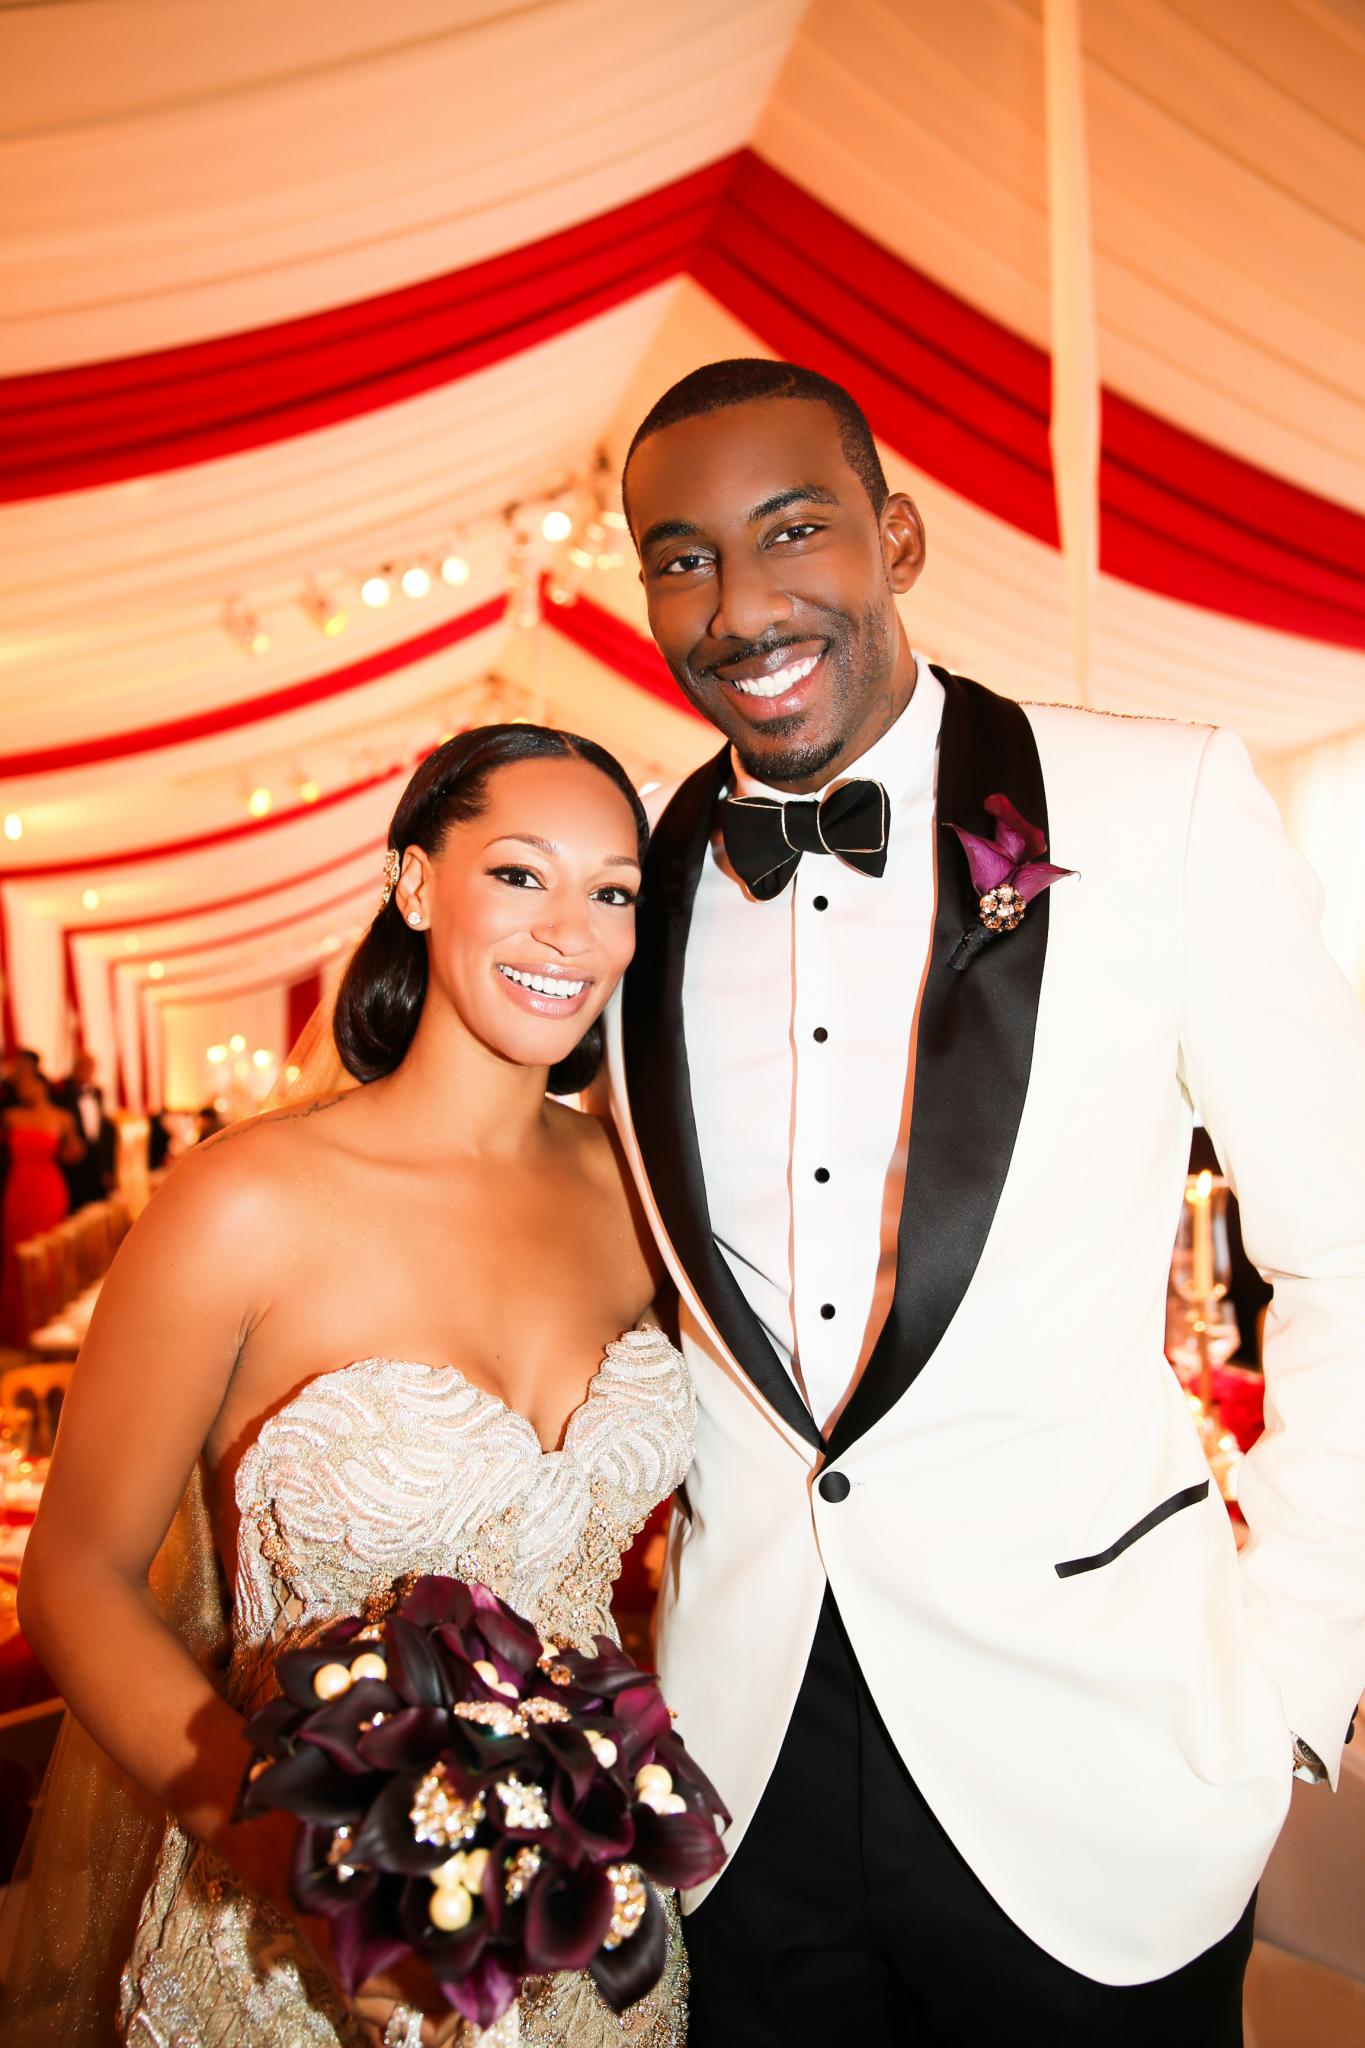 EXCLUSIVE: Amar'e Stoudemire and Alexis Welch's First Wedding Photo